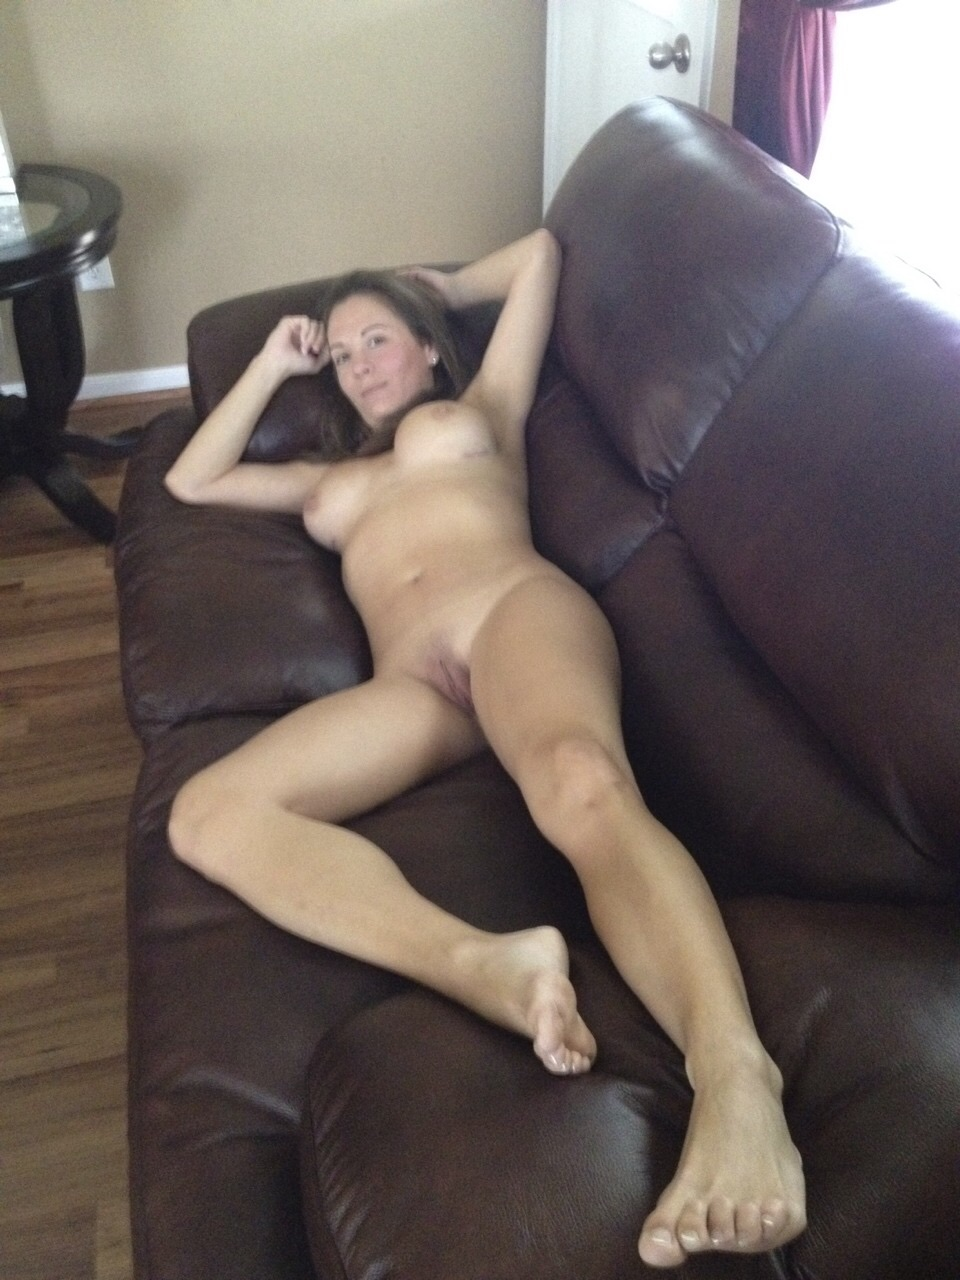 post nude wife pics instantly picassa